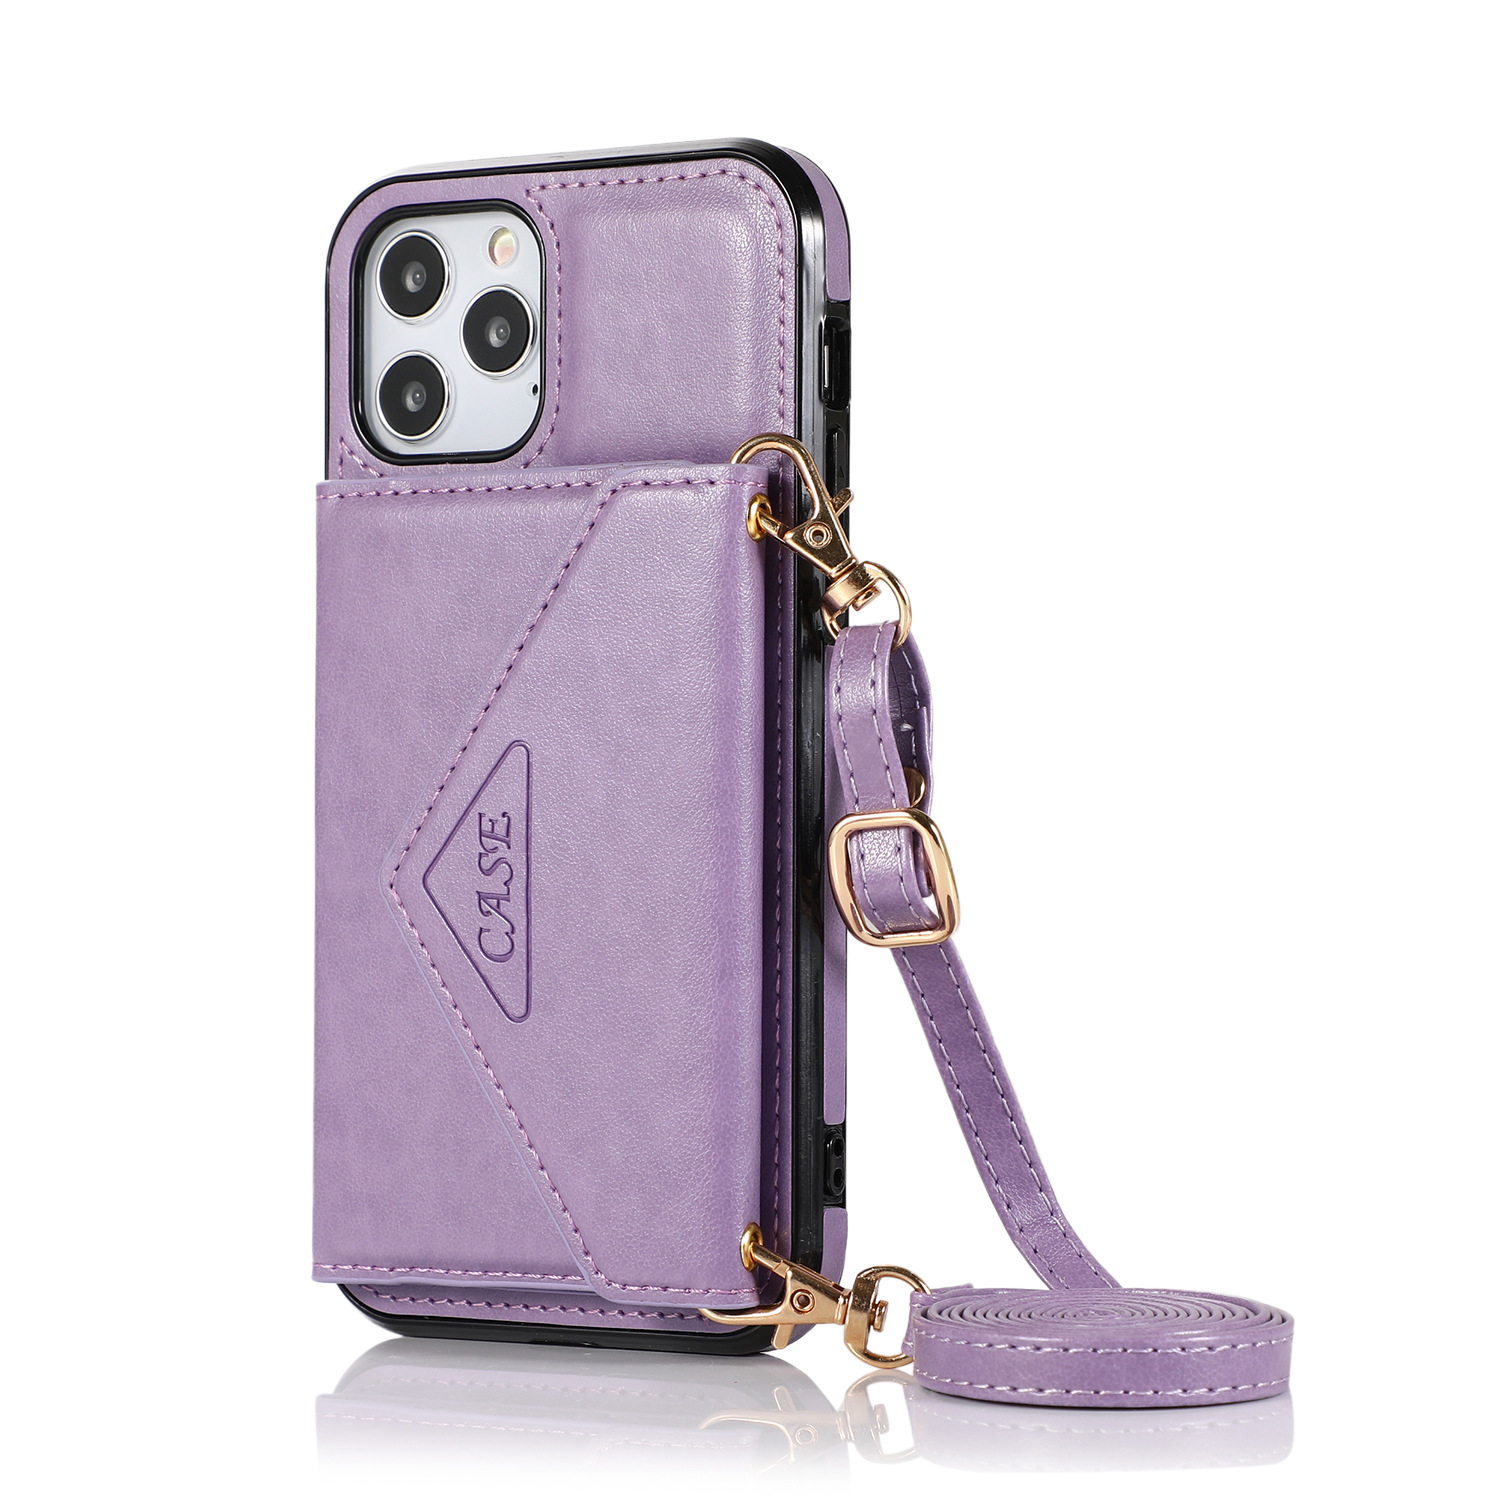 Mobile Phone Case Protective Case Cover For Iphone12/12 Pro Messenger Bag purple